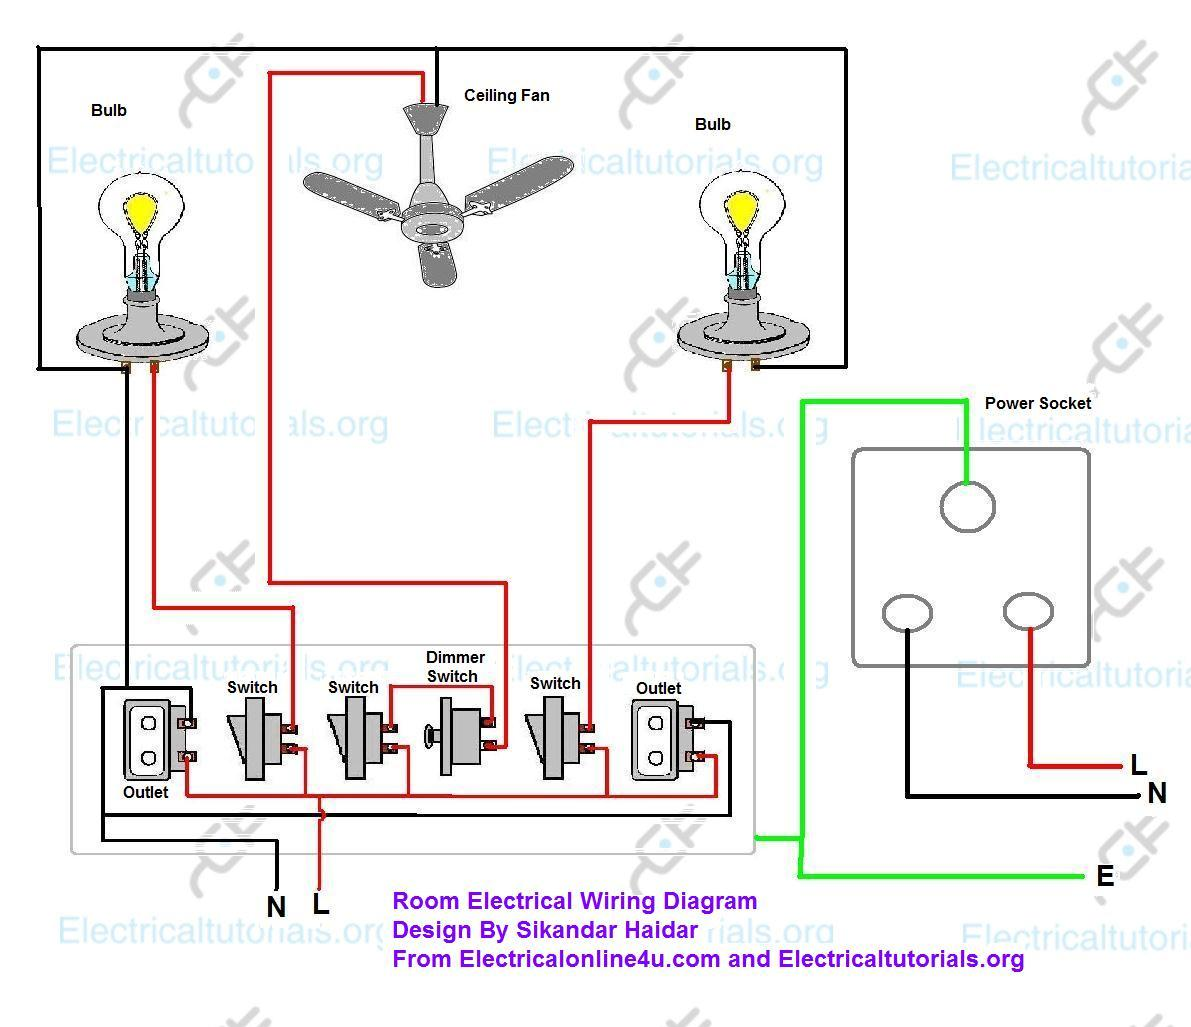 wiring a house diagram circuit wiring diagram \u2022 mifinder co wiring diagram for a house  sc 1 st  MiFinder : household wiring - yogabreezes.com